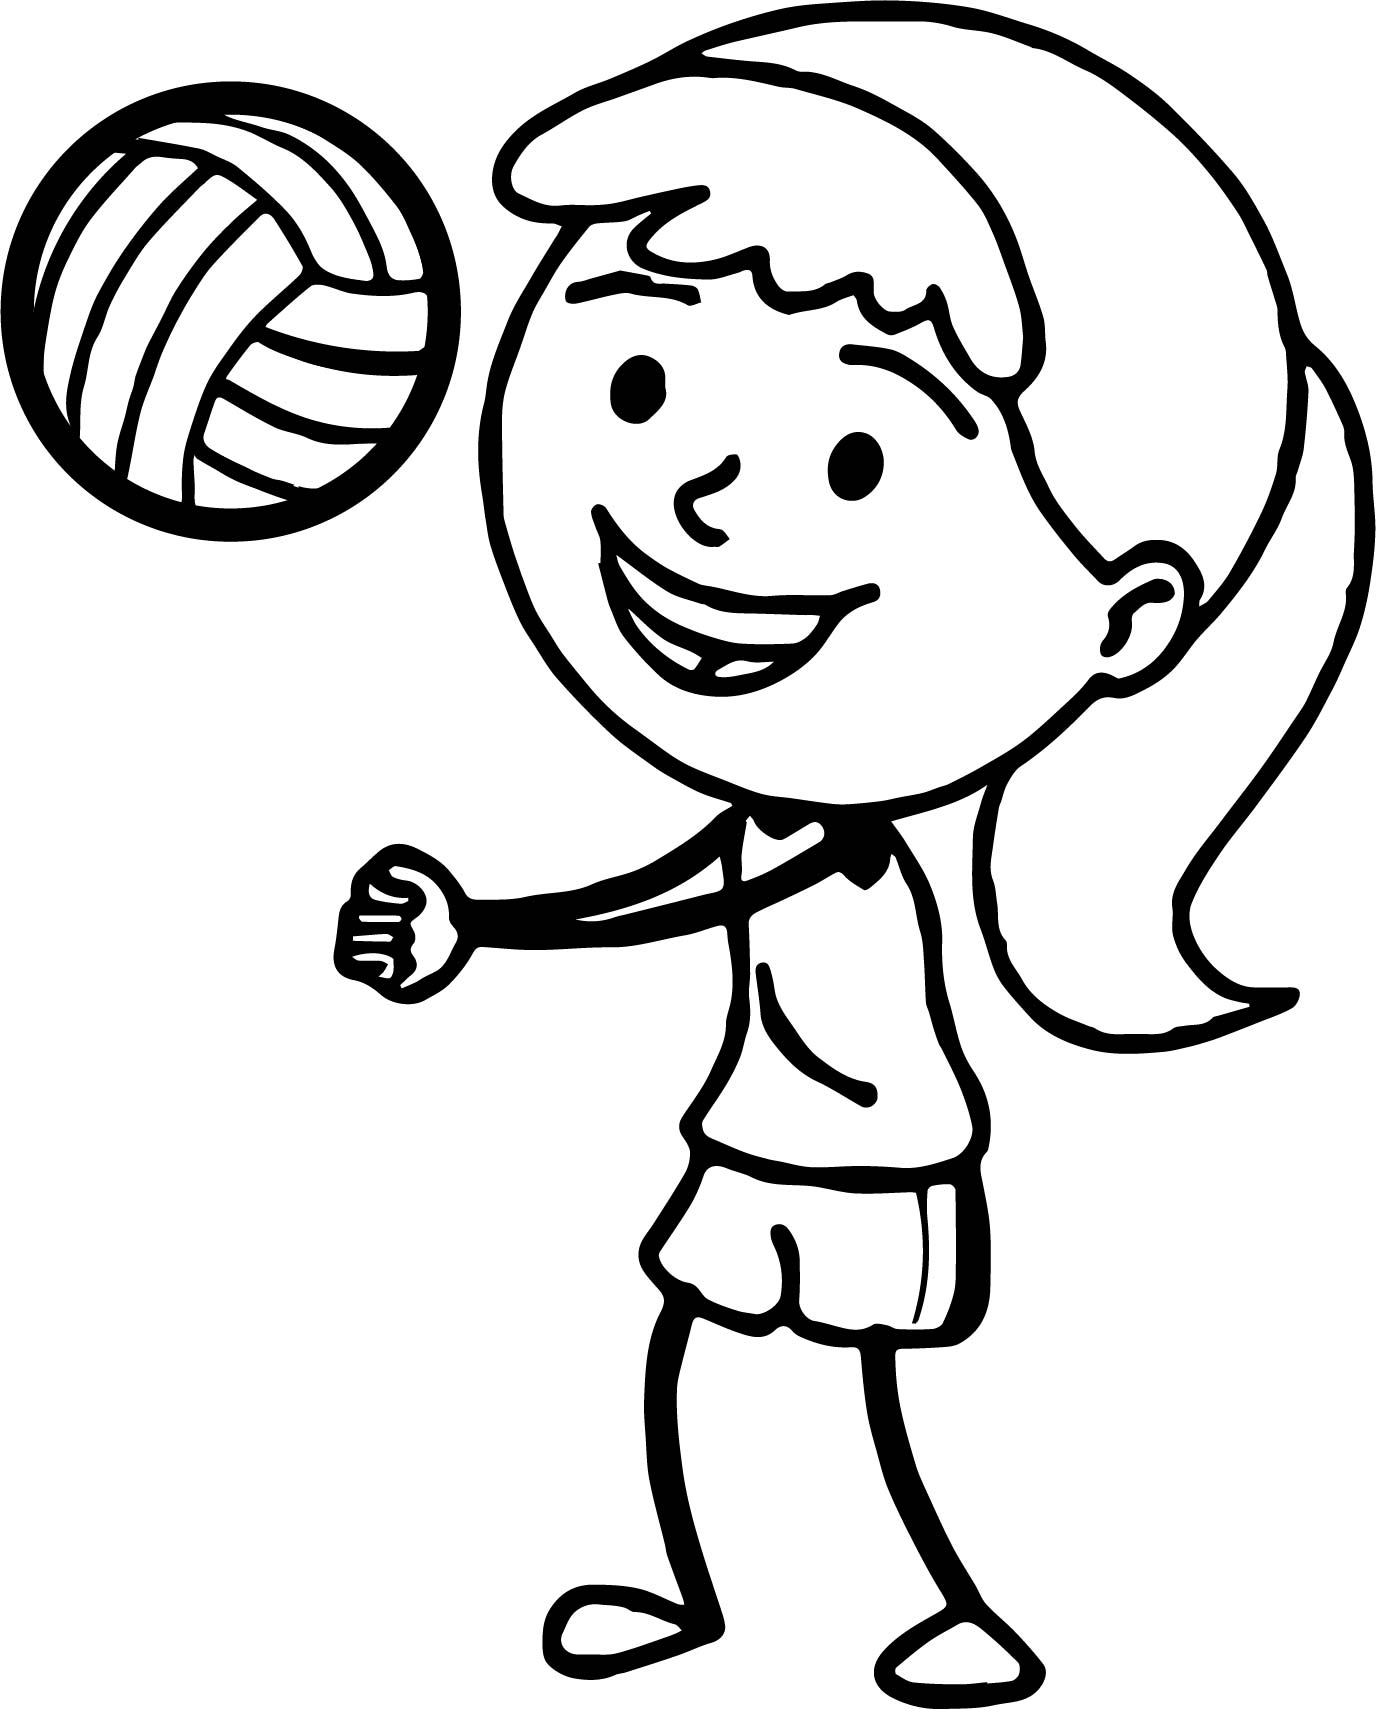 volleyball net coloring pages - photo#36